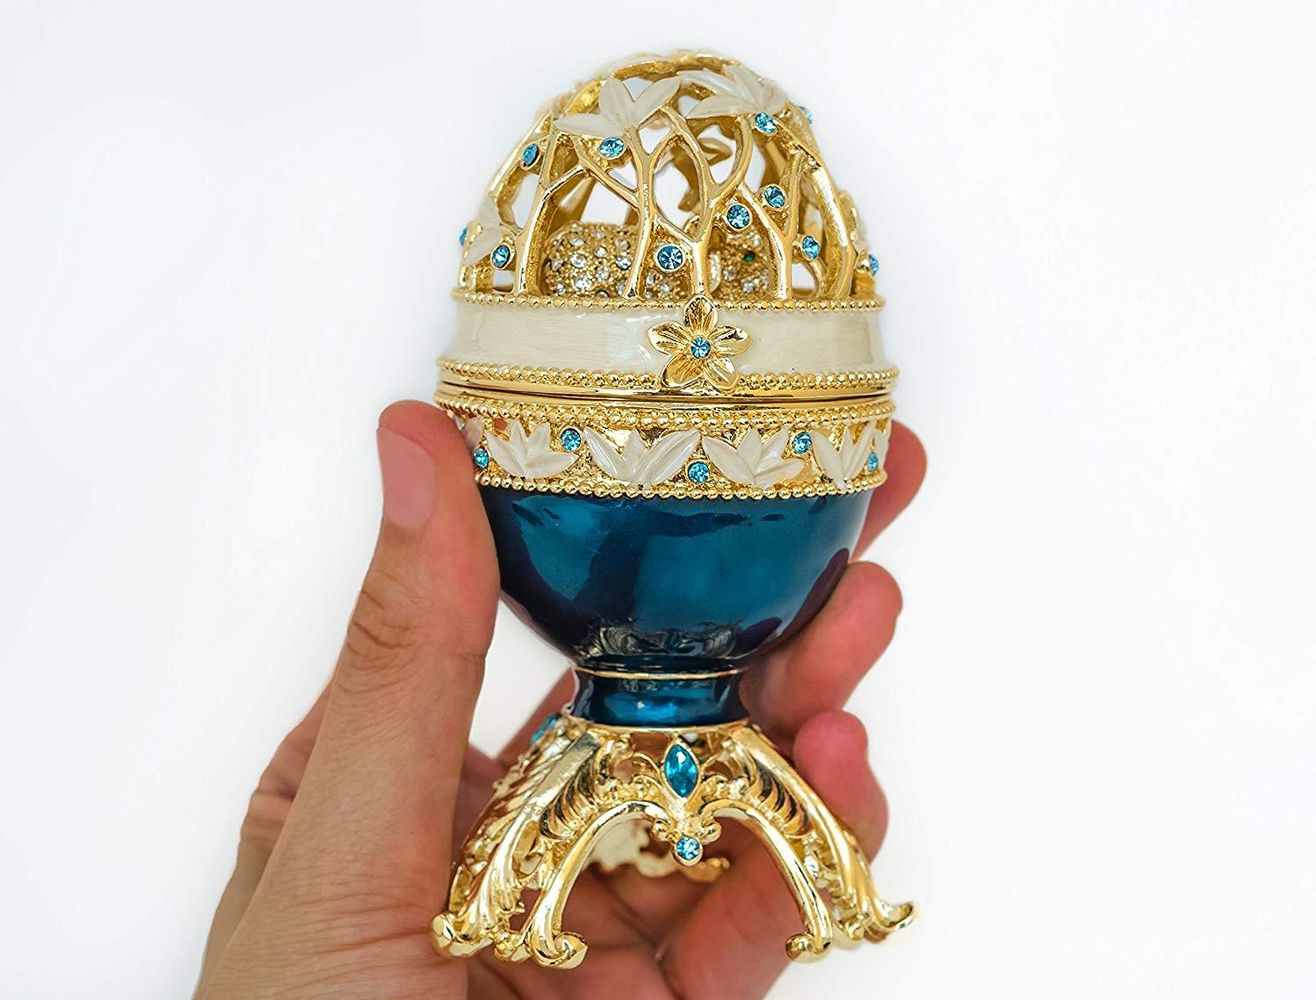 Golden Blue Faberge Egg with a Golden Elephant